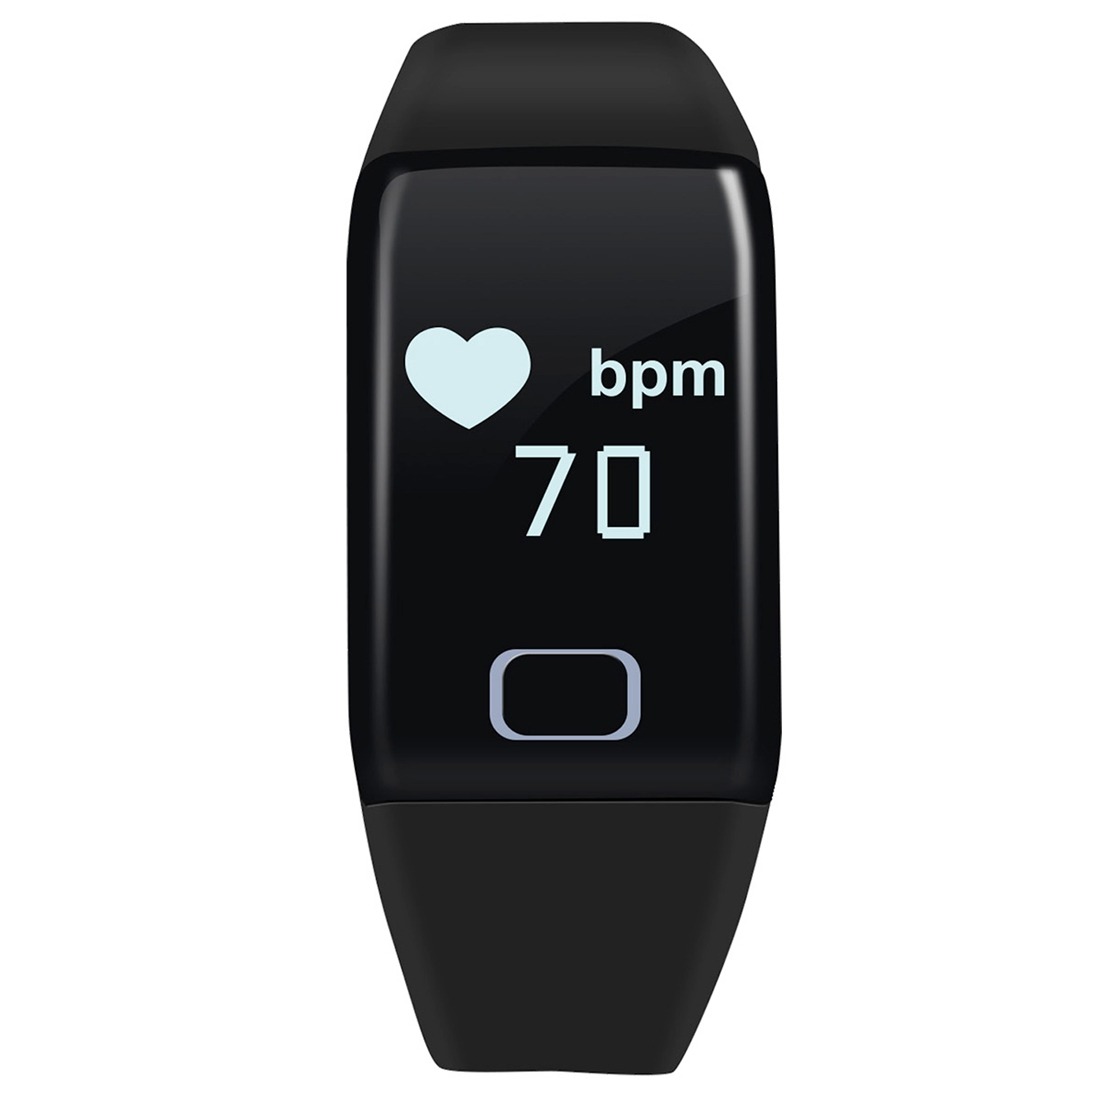 T1 Bluetooth 4.0 Multi-function Pedometer Sleep monitoring